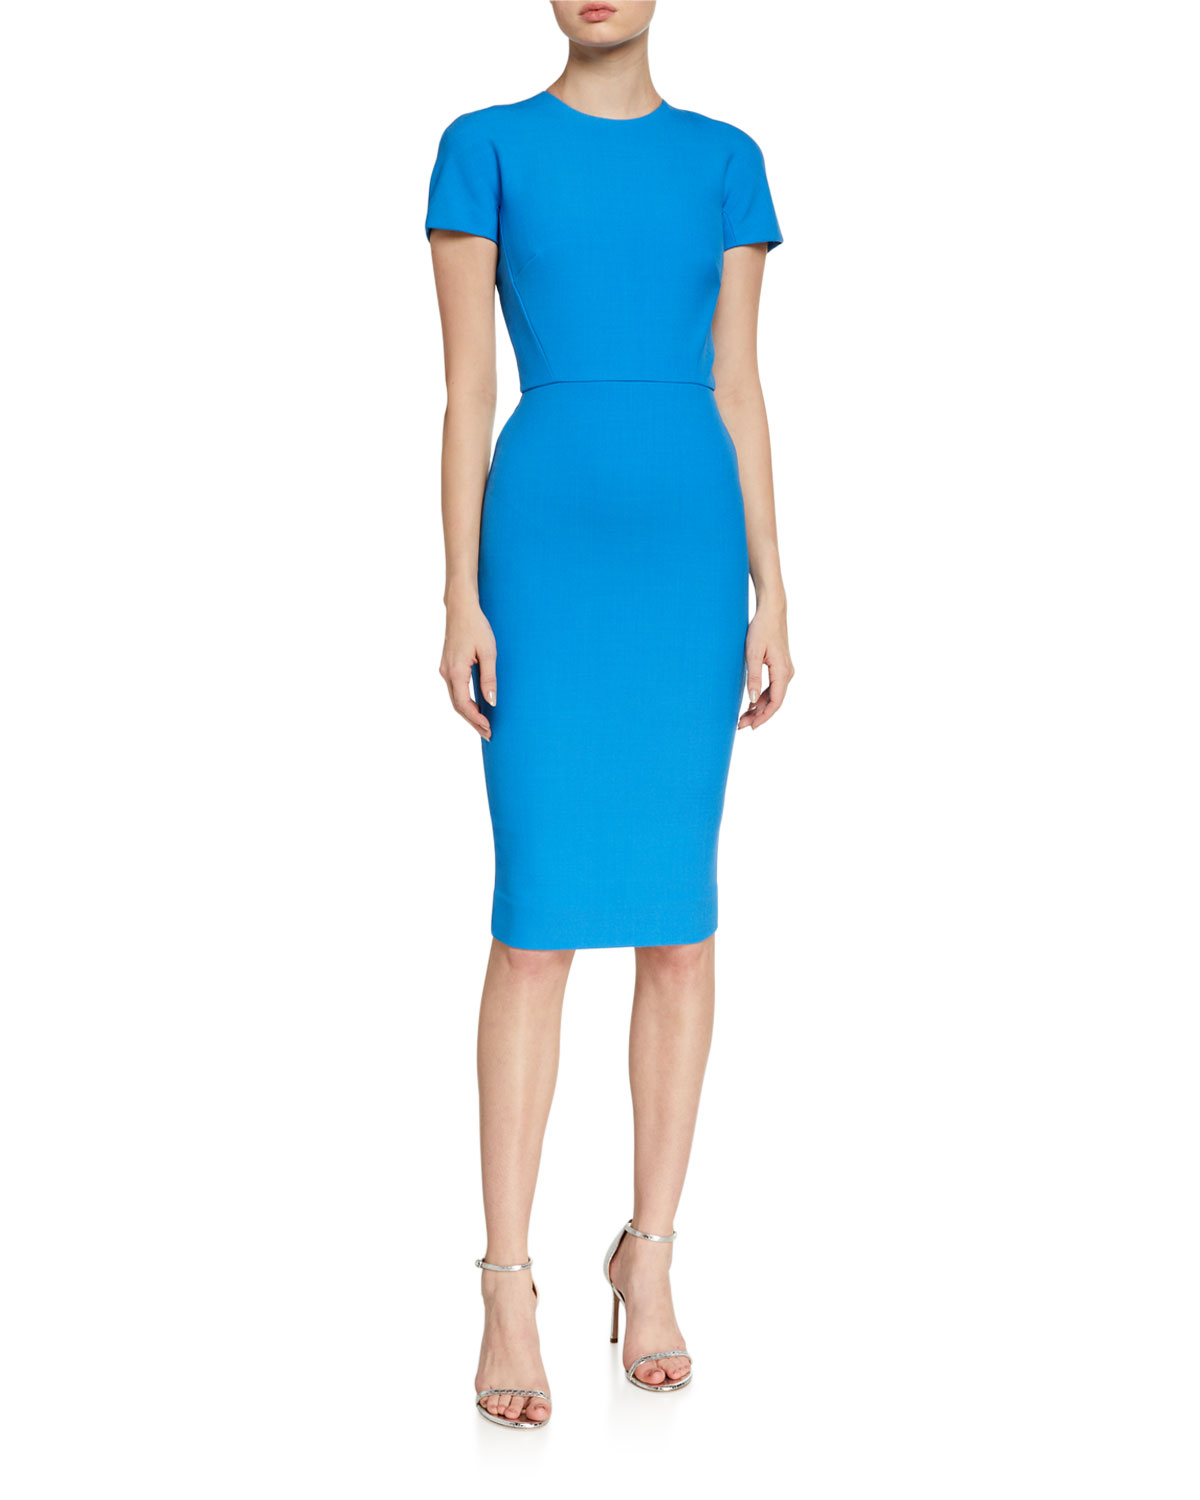 Victoria Beckham Crepe Short-Sleeve T-Shirt Dress